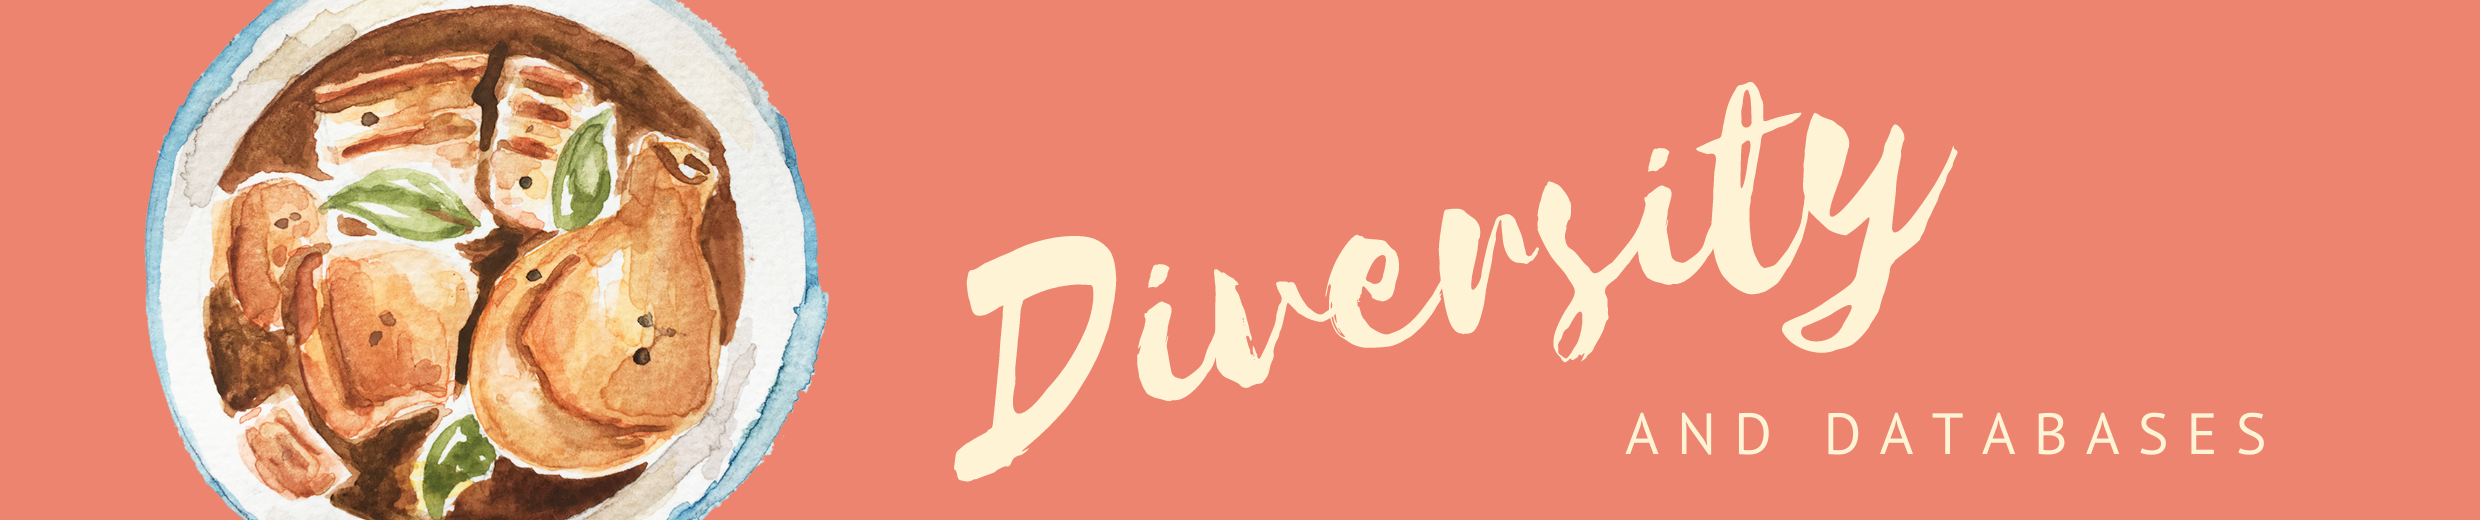 Banner that says Diversity and Databases with watercolor food image.